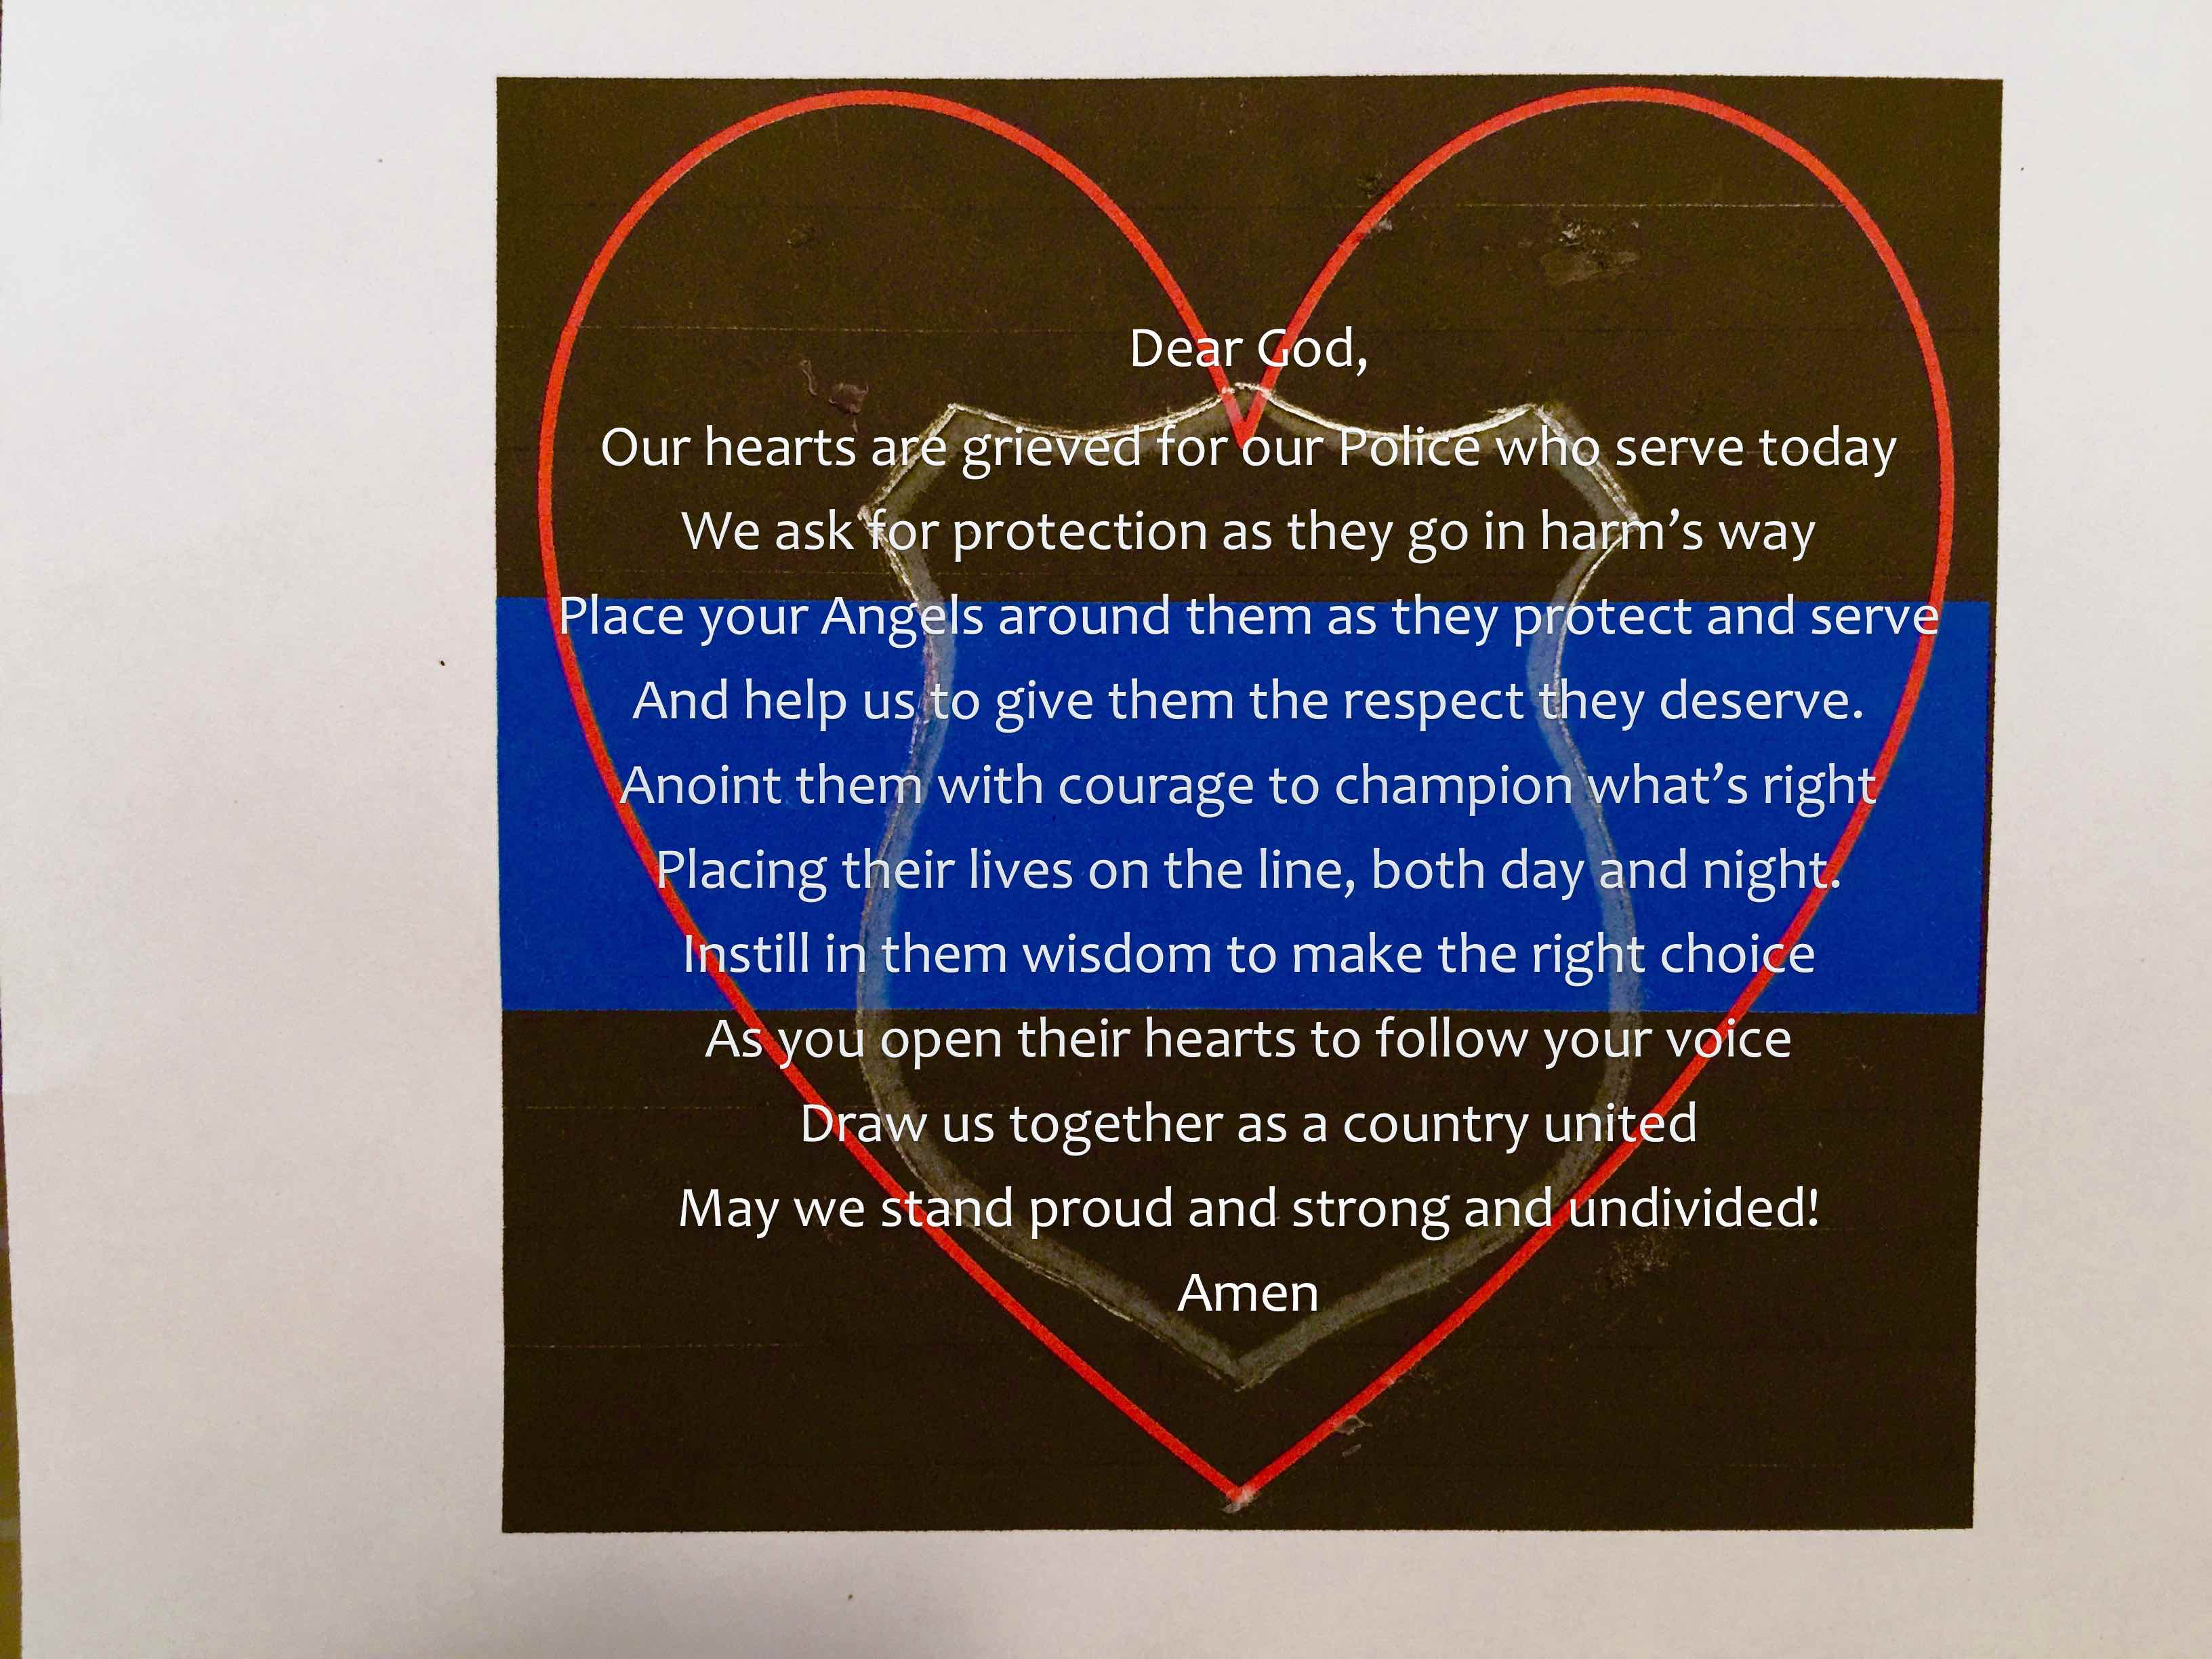 A Prayer for our Police Who Protect and Serve